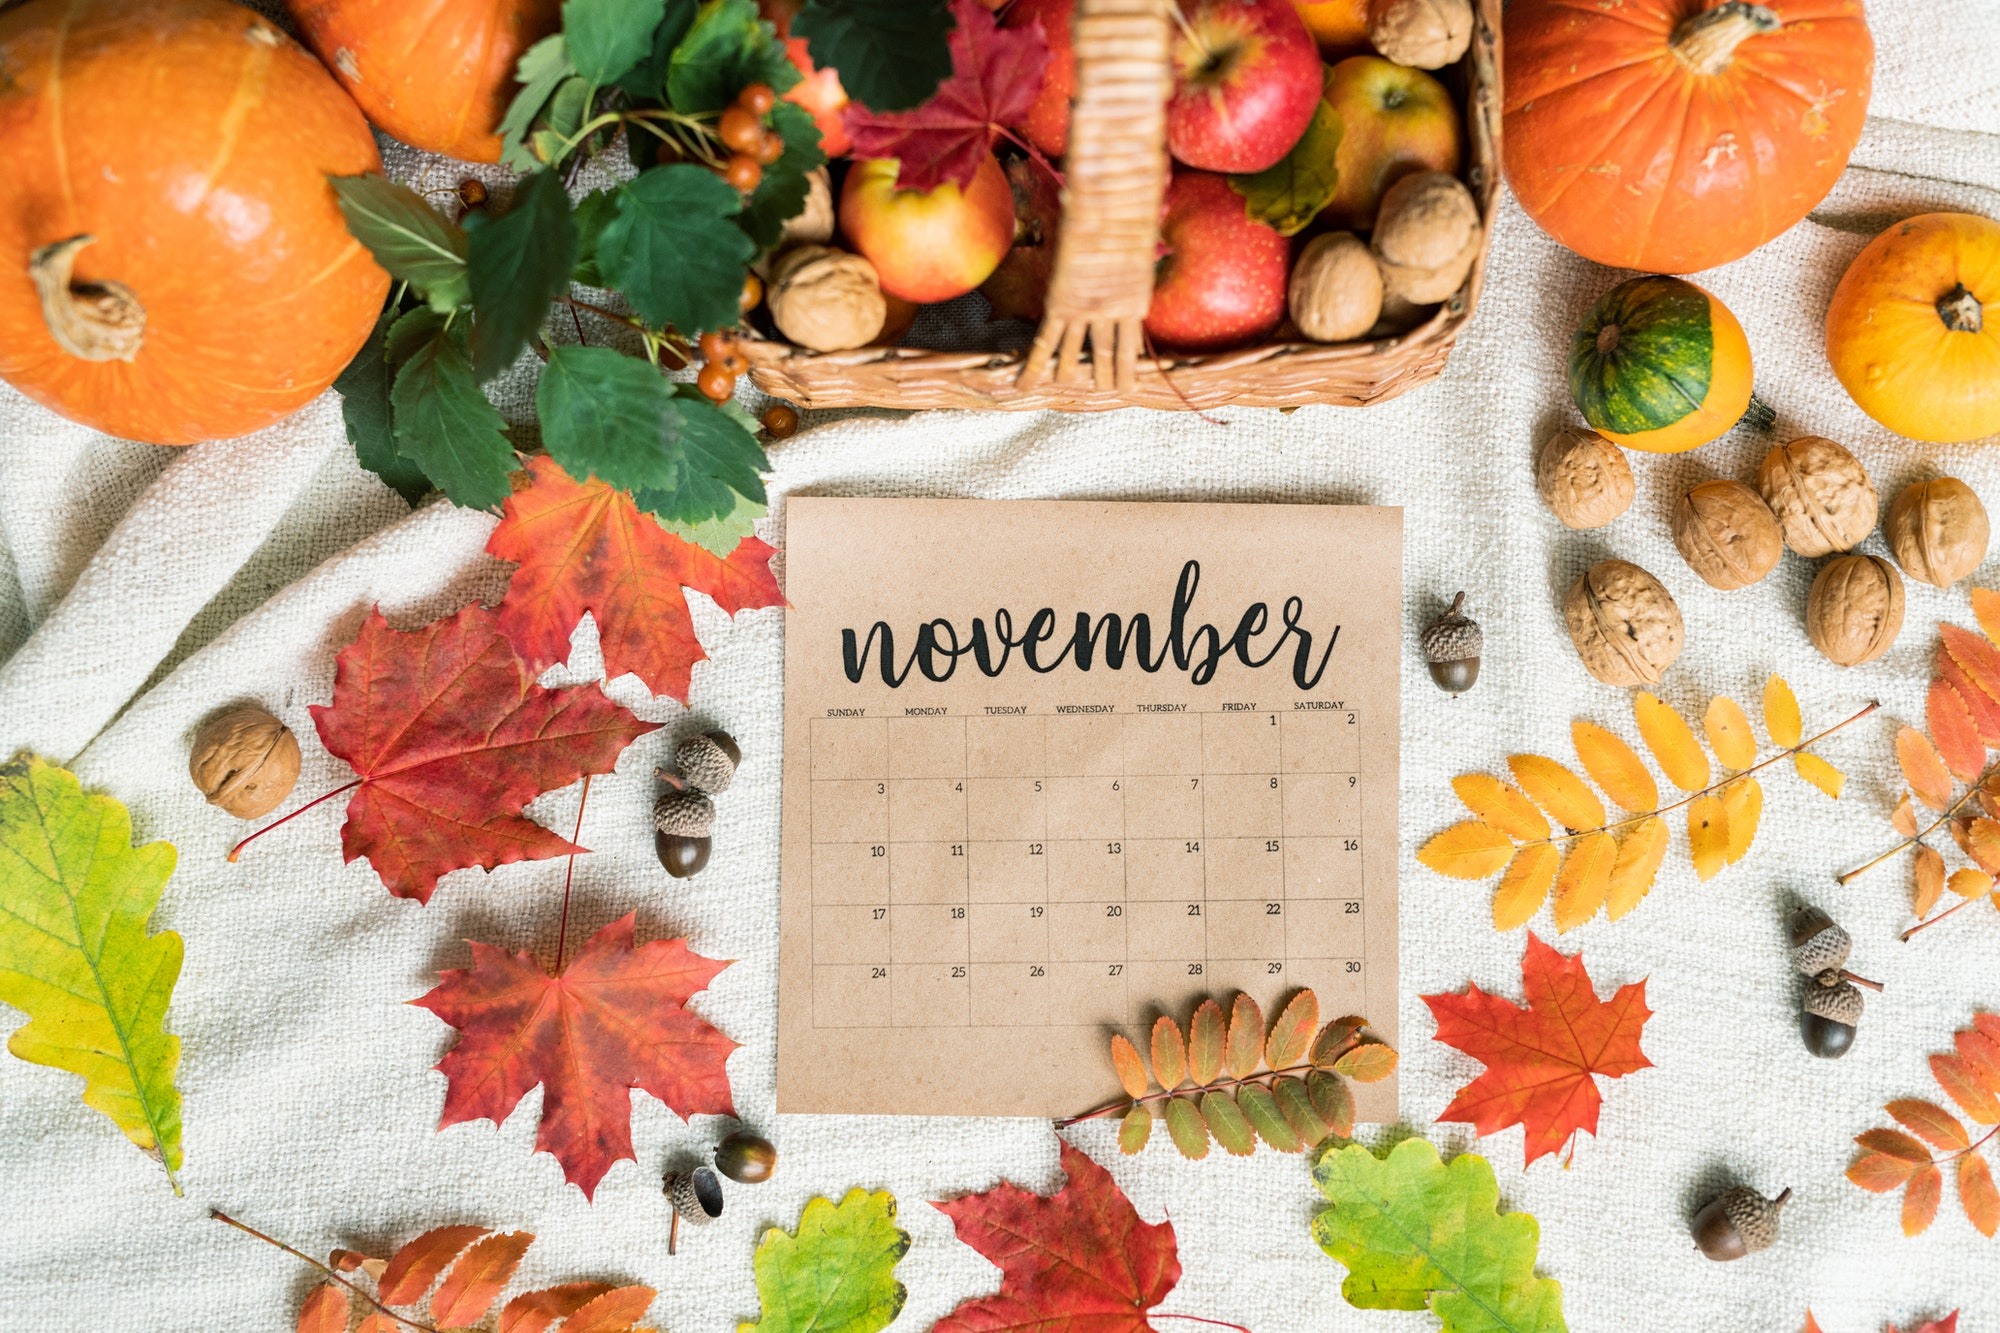 Top view of November calendar surrounded by harvest and autumn leaves